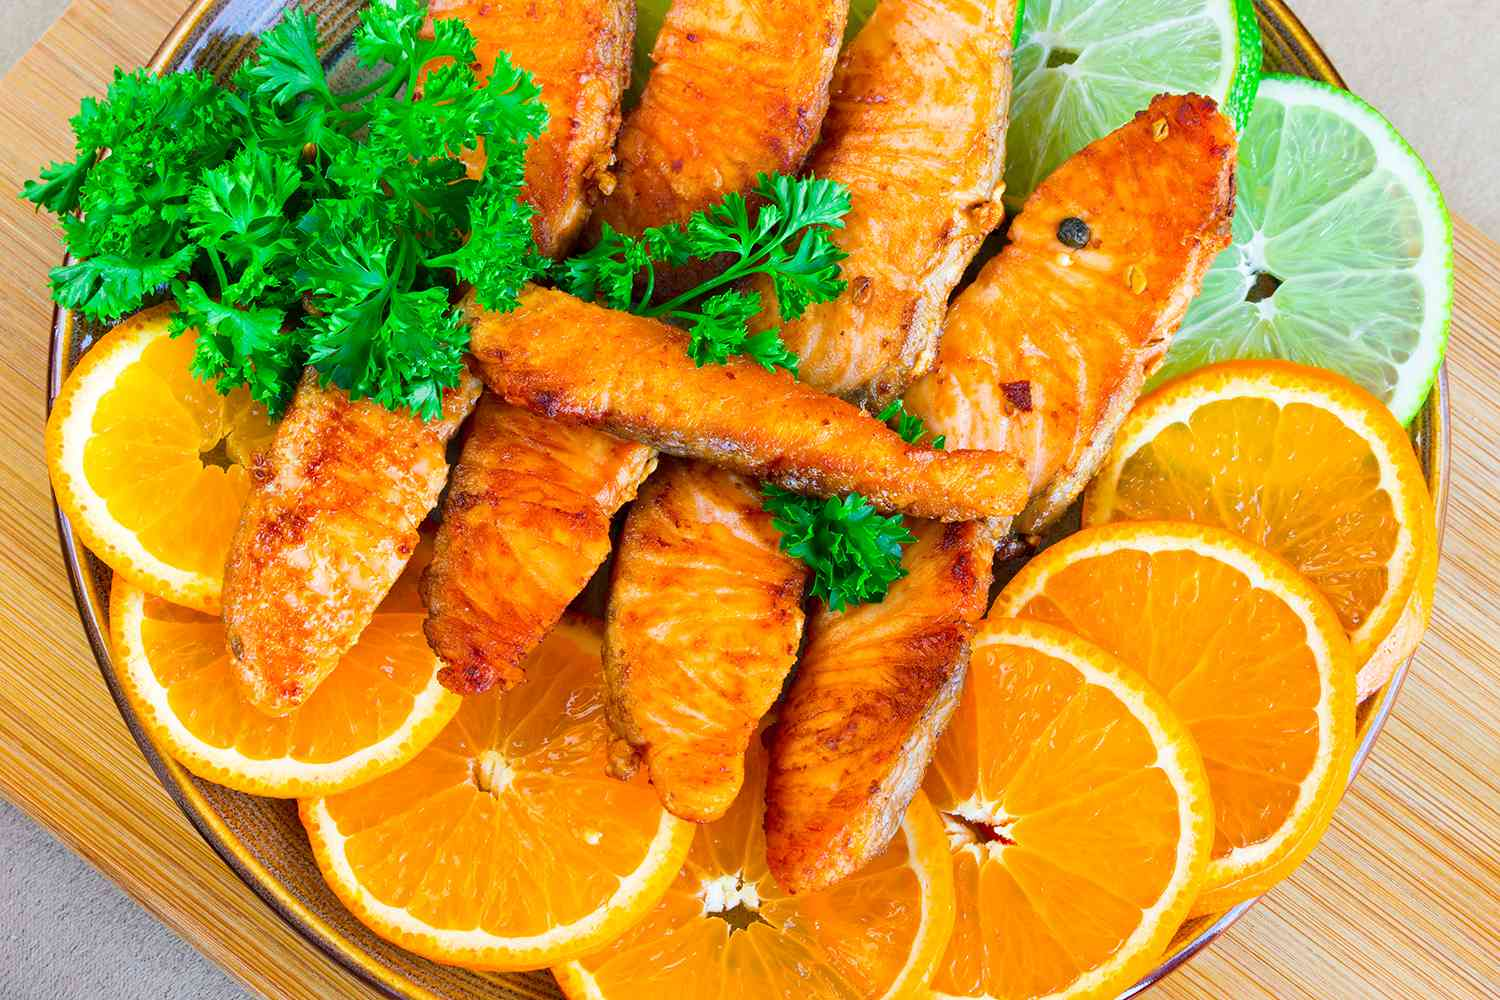 Fried salmon fillet with lime, mandarins and parsley.